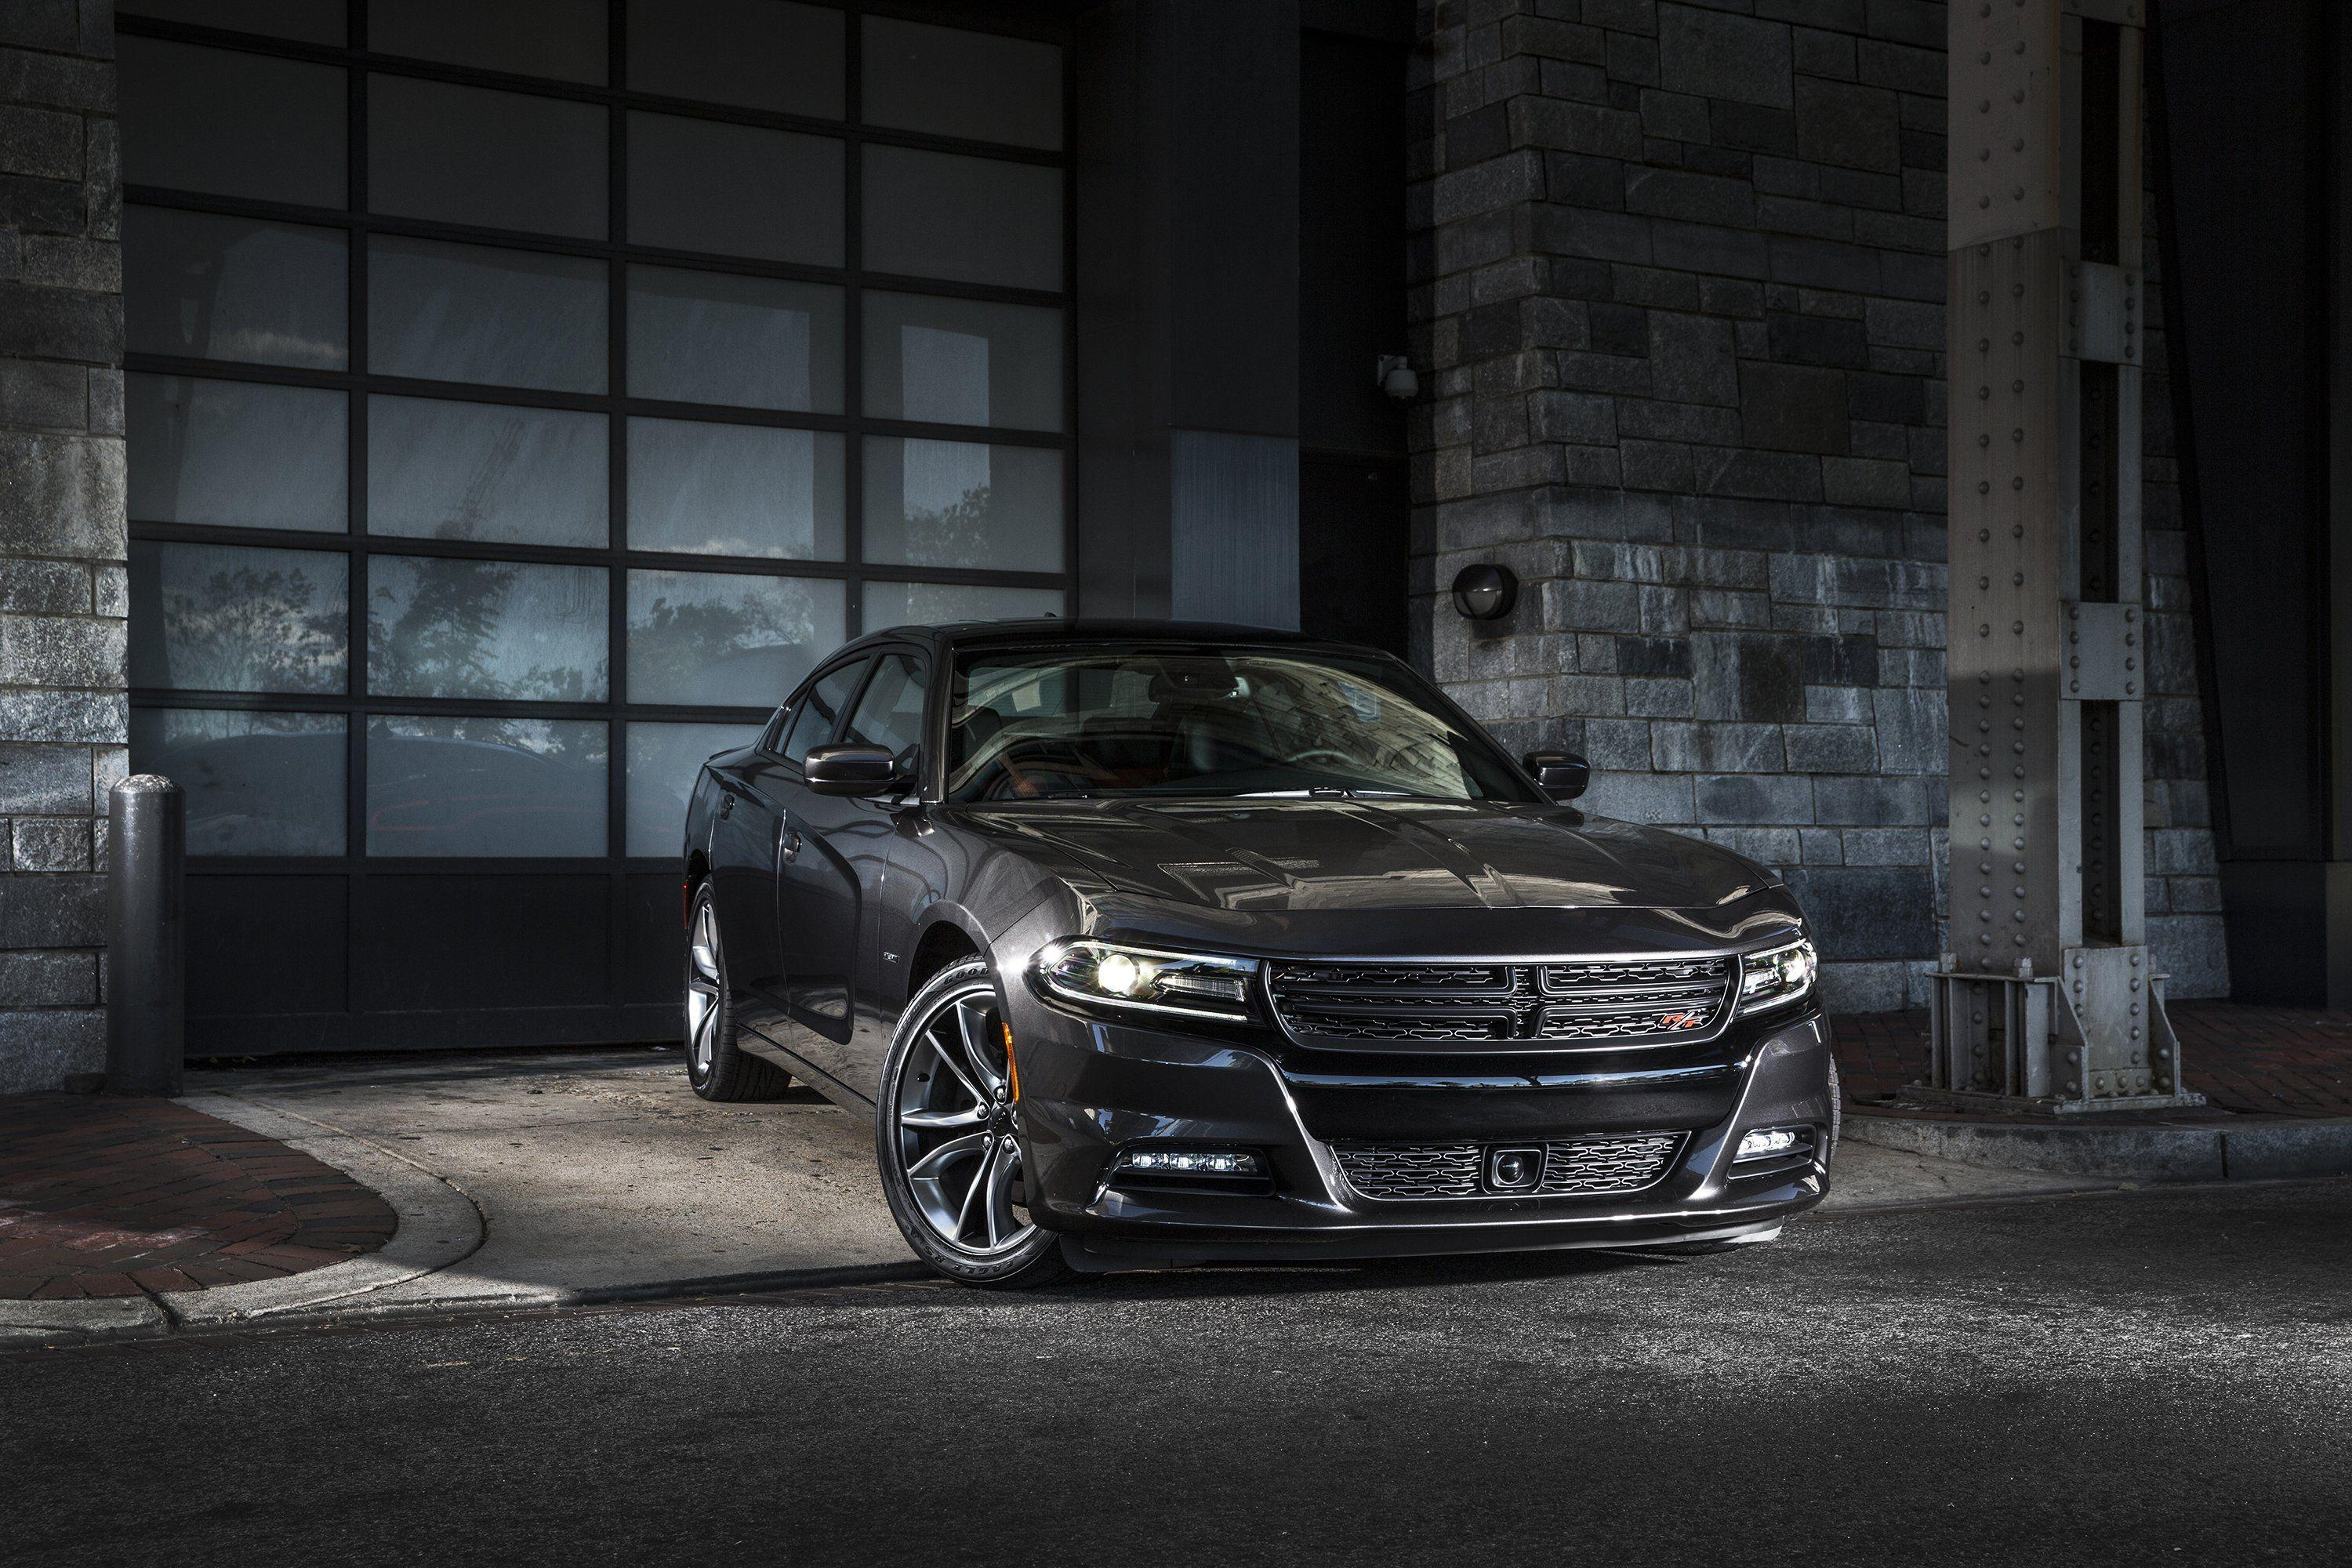 Dodge Charger Wallpapers, 47 Dodge Charger Image and Wallpapers for